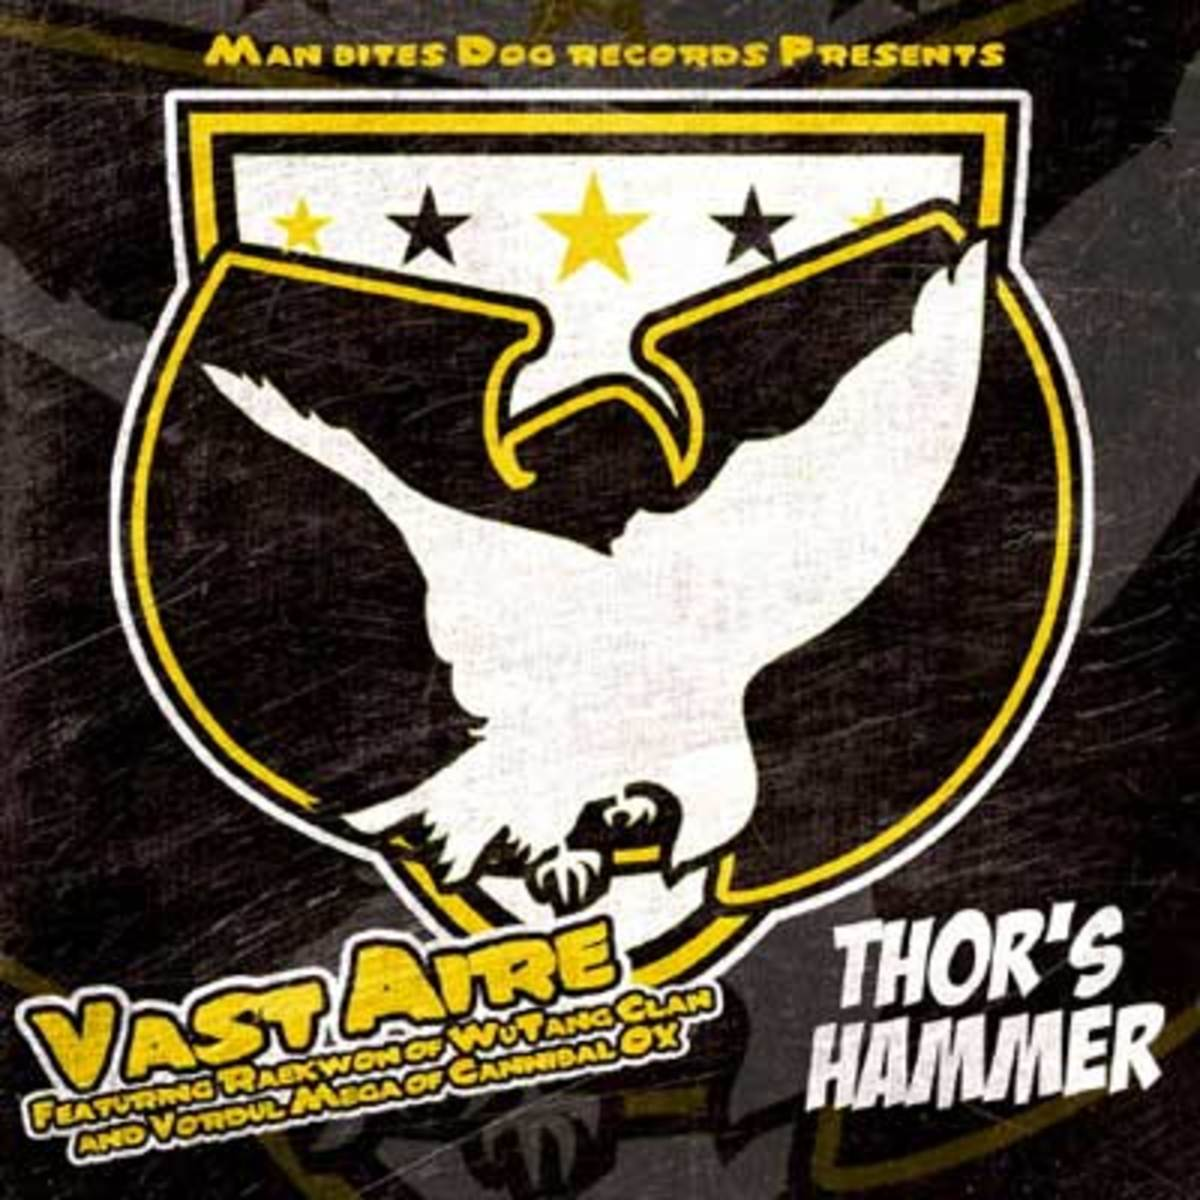 vastaire-thorshammer.jpg